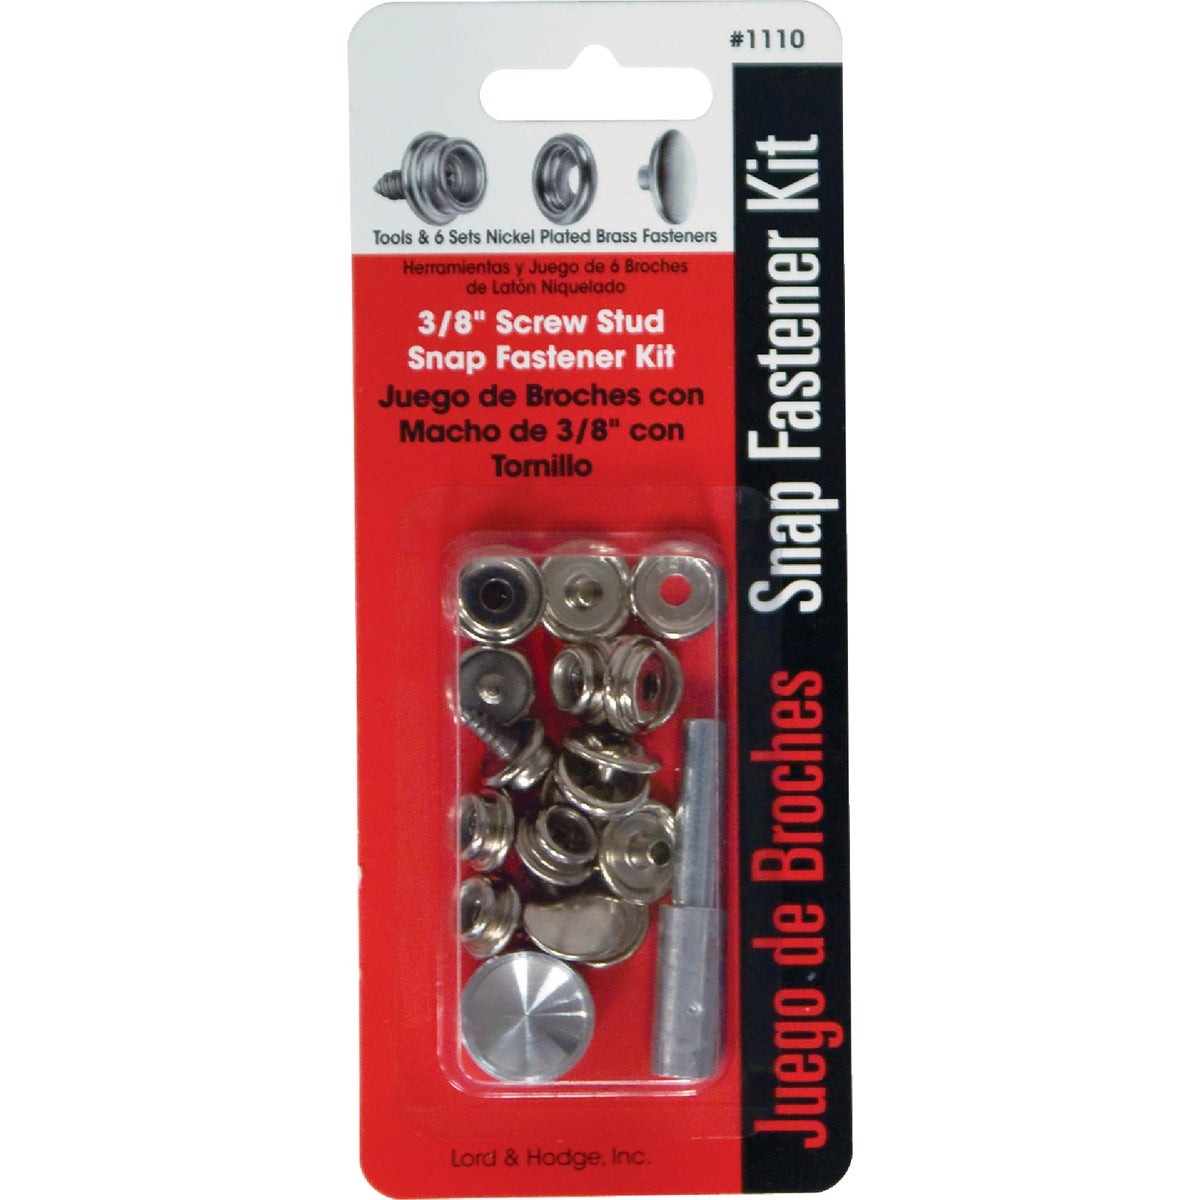 SNAP FASTENER KIT - 1110 by Lord & Hodge Inc